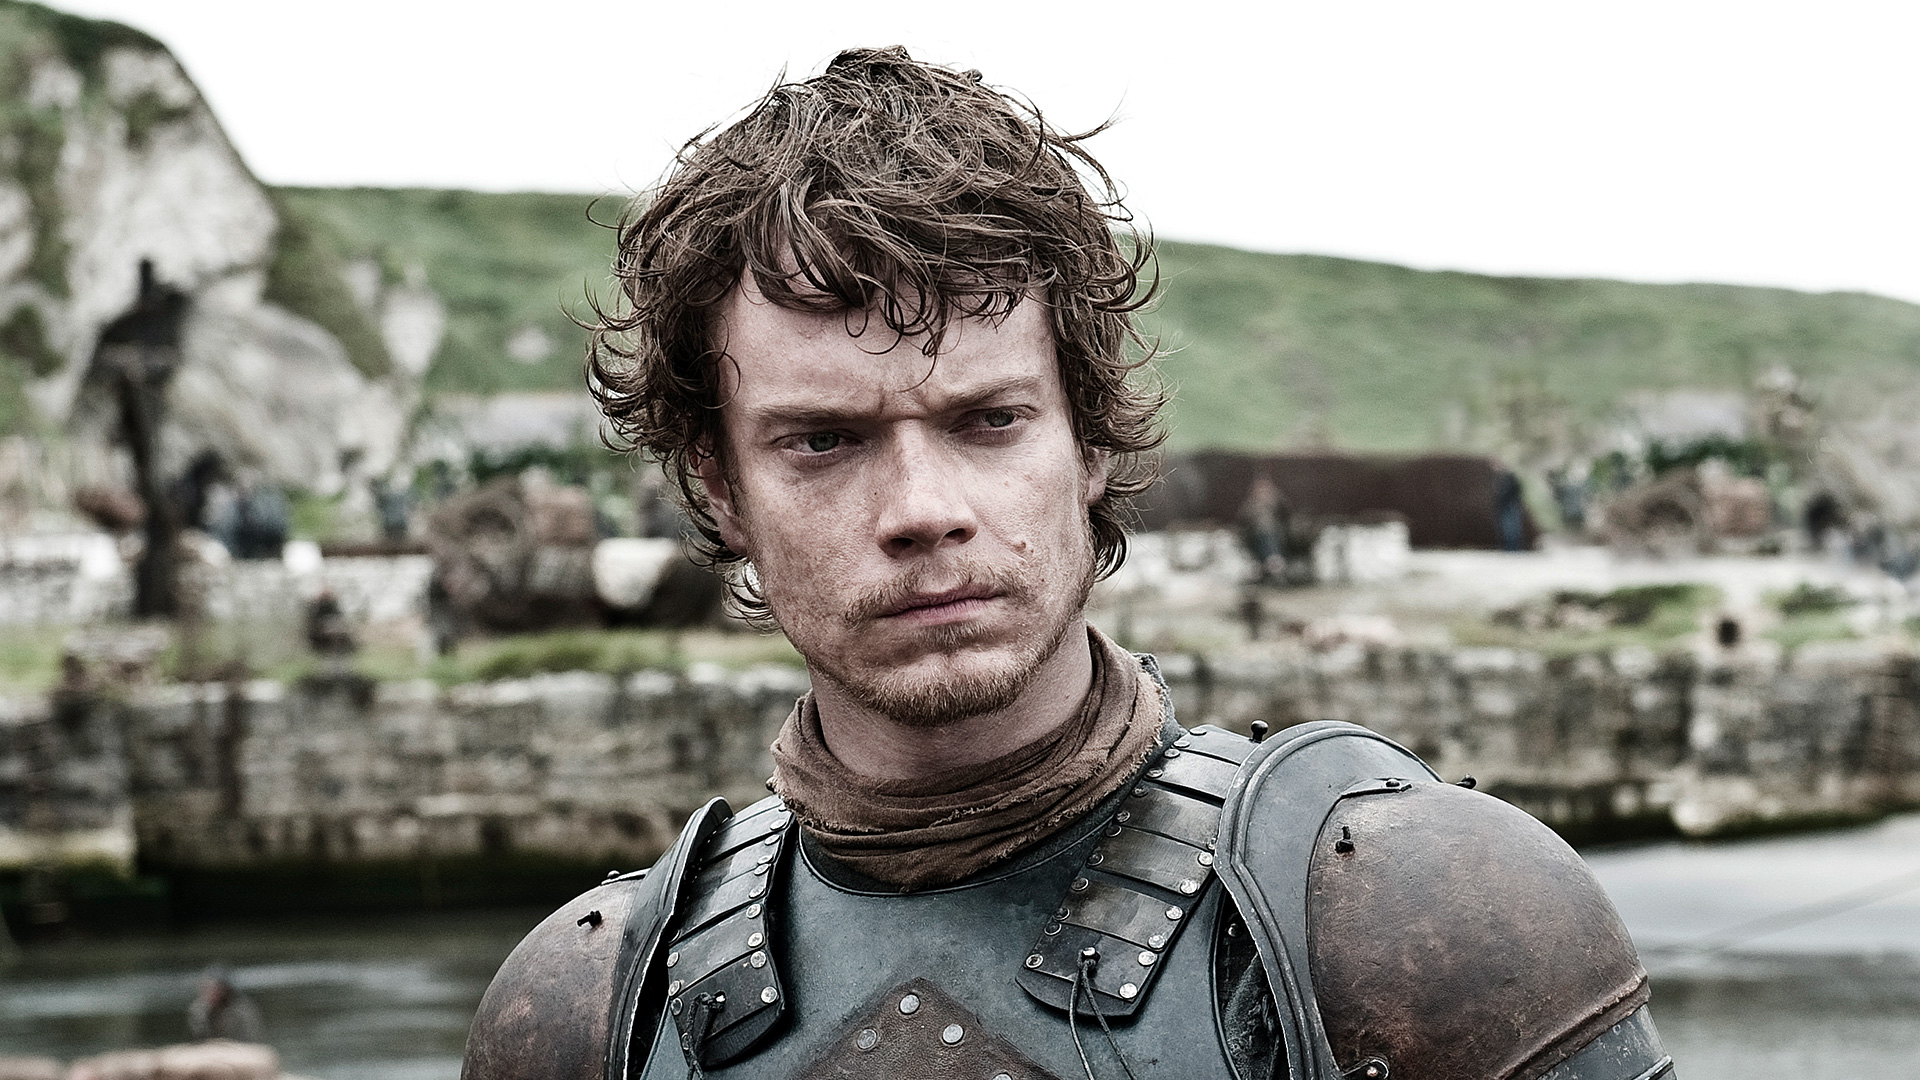 theon greyjoy 1920 These Game Of Thrones Actors Had Some Interesting Early Roles